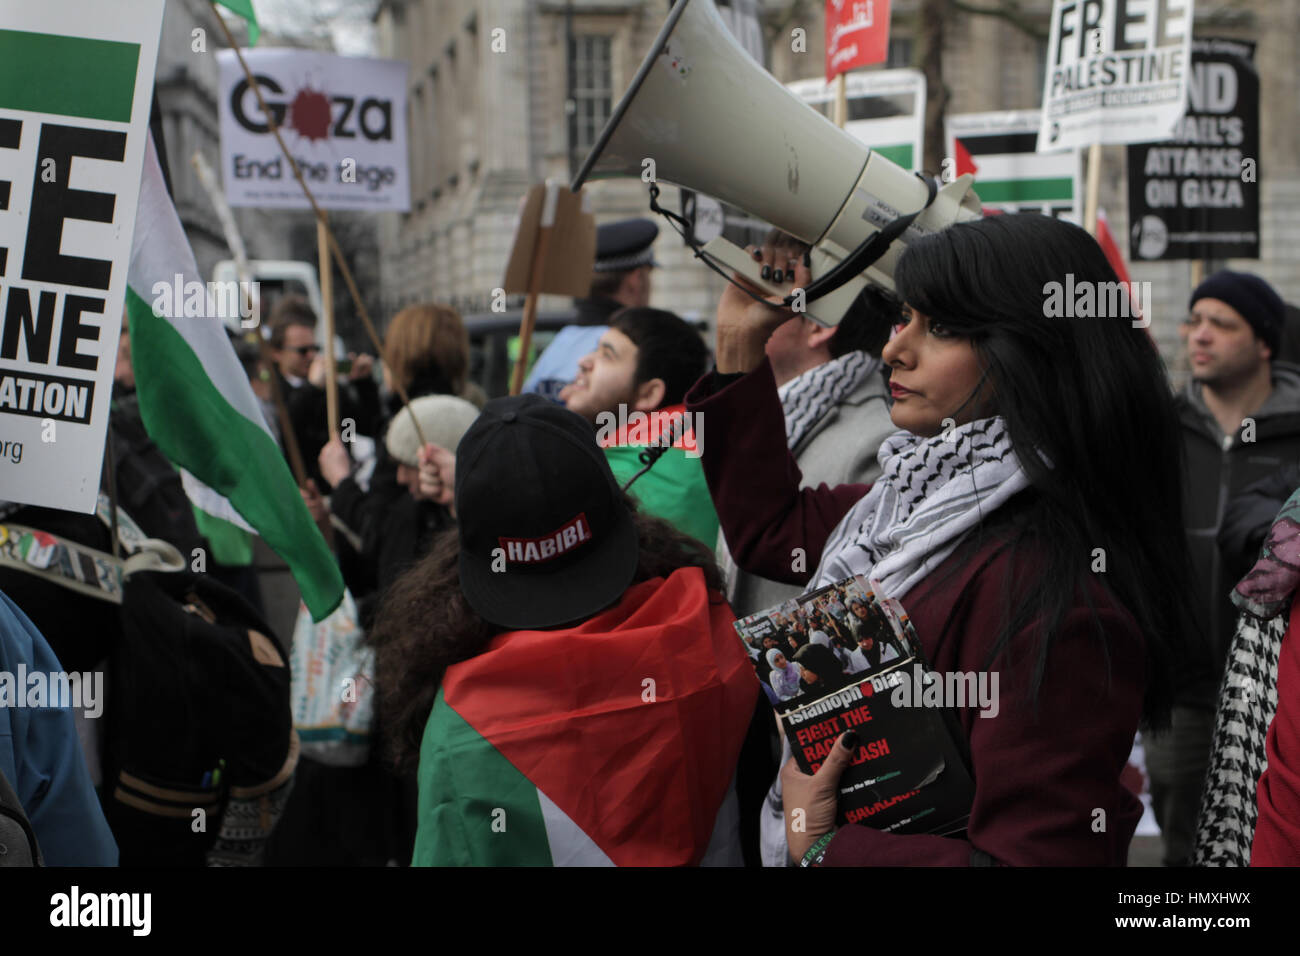 London, UK. 6th Feb, 2017. A pro-Palestine protestor holds up a loud speaker as she prepares to work the crowd against - Stock Image